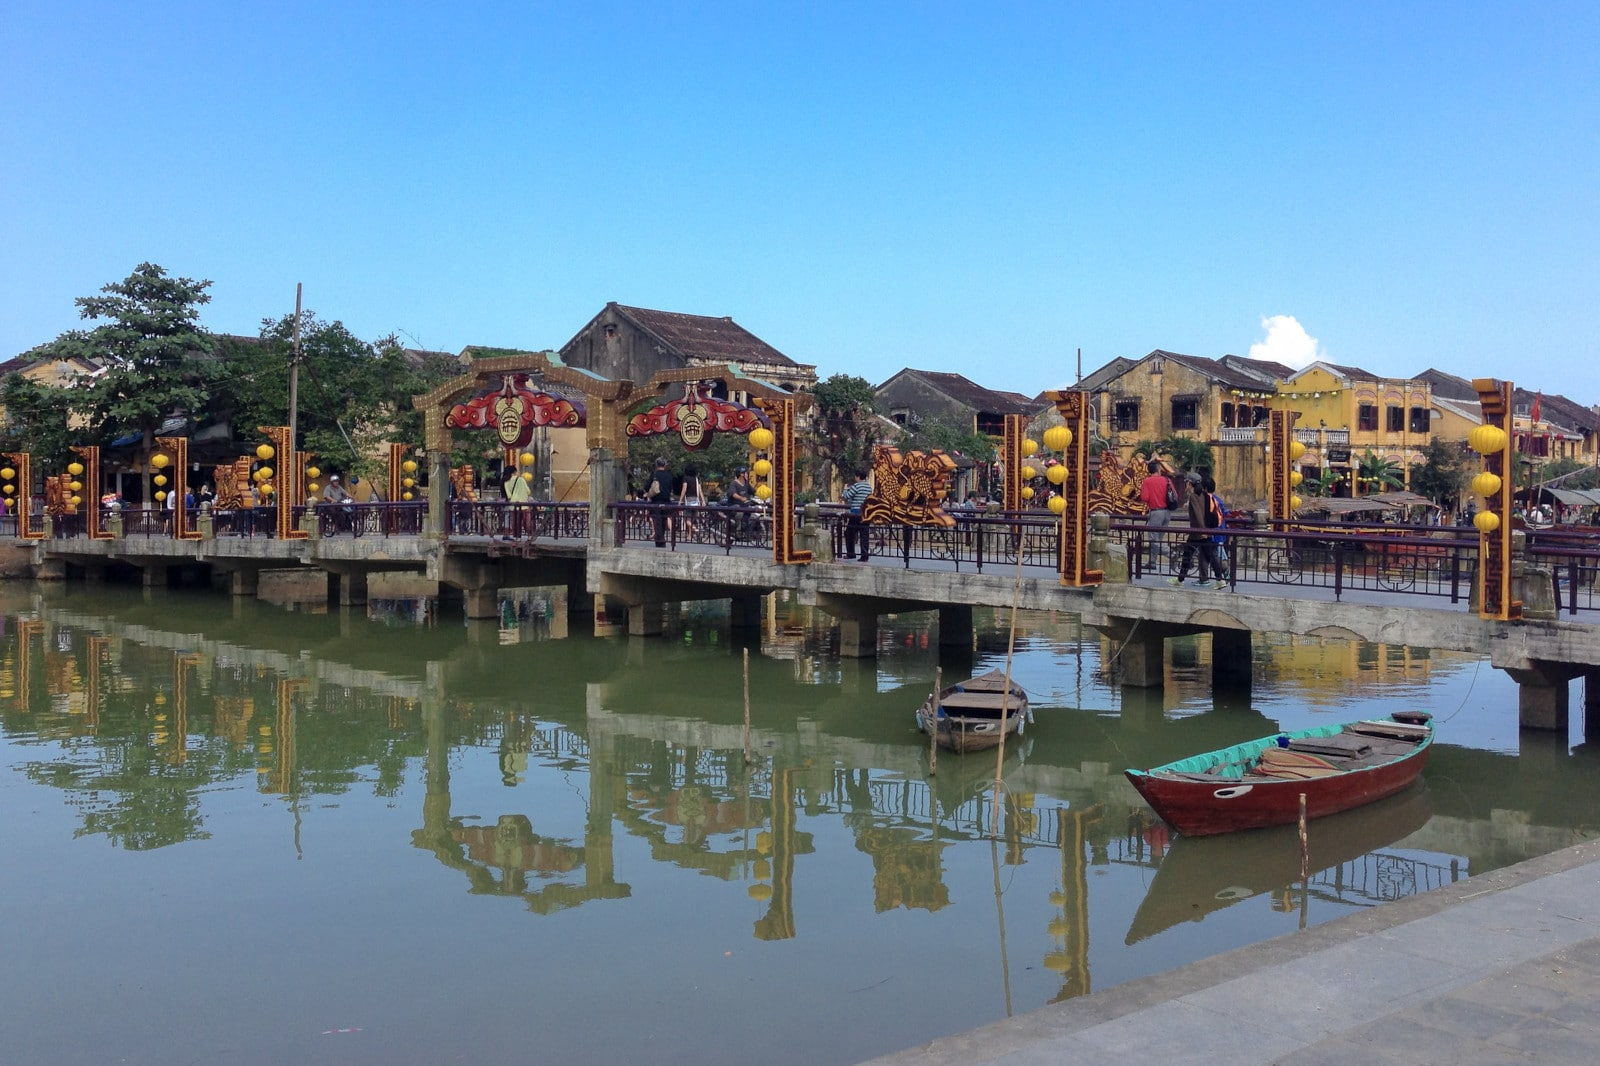 Image of the bridge of lights in Old Town Hoi An, Vietnam